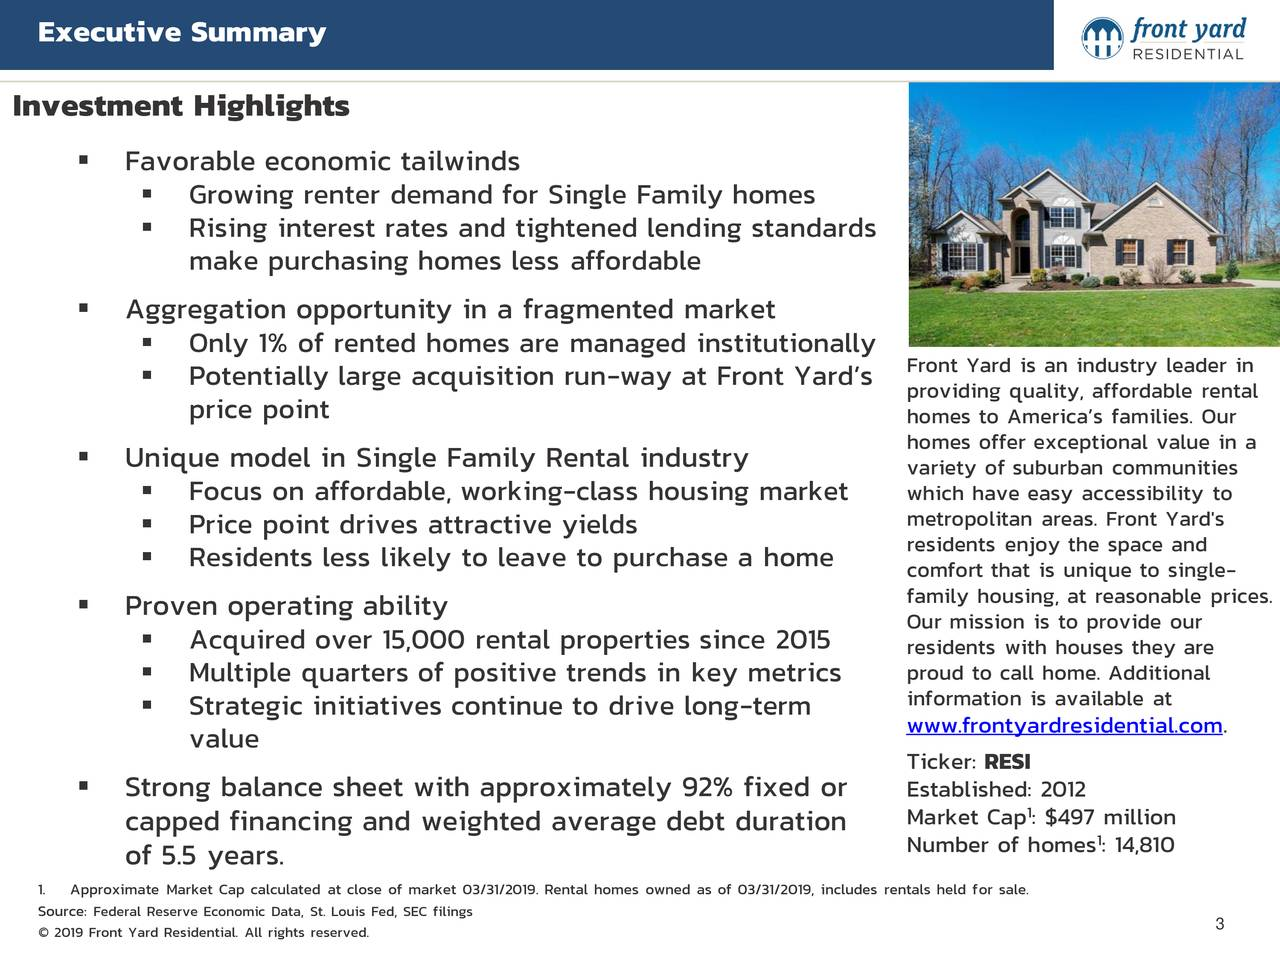 Investment Highlights  Favorable economic tailwinds  Growing renter demand for Single Family homes  Rising interest rates and tightened lending standards make purchasing homes less affordable  Aggregation opportunity in a fragmented market  Only 1% of rented homes are managed institutionally  Potentially large acquisition run-way at Front Yard's Front Yard is an industry leader in price point providing quality, affordable rental homes to America's families. Our  Unique model in Single Family Rental industry homes offer exceptional value in a variety of suburban communities  Focus on affordable, working-class housing market which have easy accessibility to  Price point drives attractive yields metropolitan areas. Front Yard's residents enjoy the space and  Residents less likely to leave to purchase a home comfort that is unique to single- family housing, at reasonable prices.  Proven operating ability Our mission is to provide our  Acquired over 15,000 rental properties since 2015 residents with houses they are  Multiple quarters of positive trends in key metrics proud to call home. Additional information is available at  Strategic initiatives continue to drive long-term value www.frontyardresidential.com. Ticker: RESI  Strong balance sheet with approximately 92% fixed or Established: 2012 Market Cap : $497 million capped financing and weighted average debt duration Number of homes : 14,810 of 5.5 years. 1. Approximate Market Cap calculated at close of market 03/31/2019. Rental homes owned as of 03/31/2019, includes rentals held for sale. SourcFederal Reserve Economic Data, St. Louis Fed, SEC filings © 2019 Front Yard Residential. All rights reserved. 3